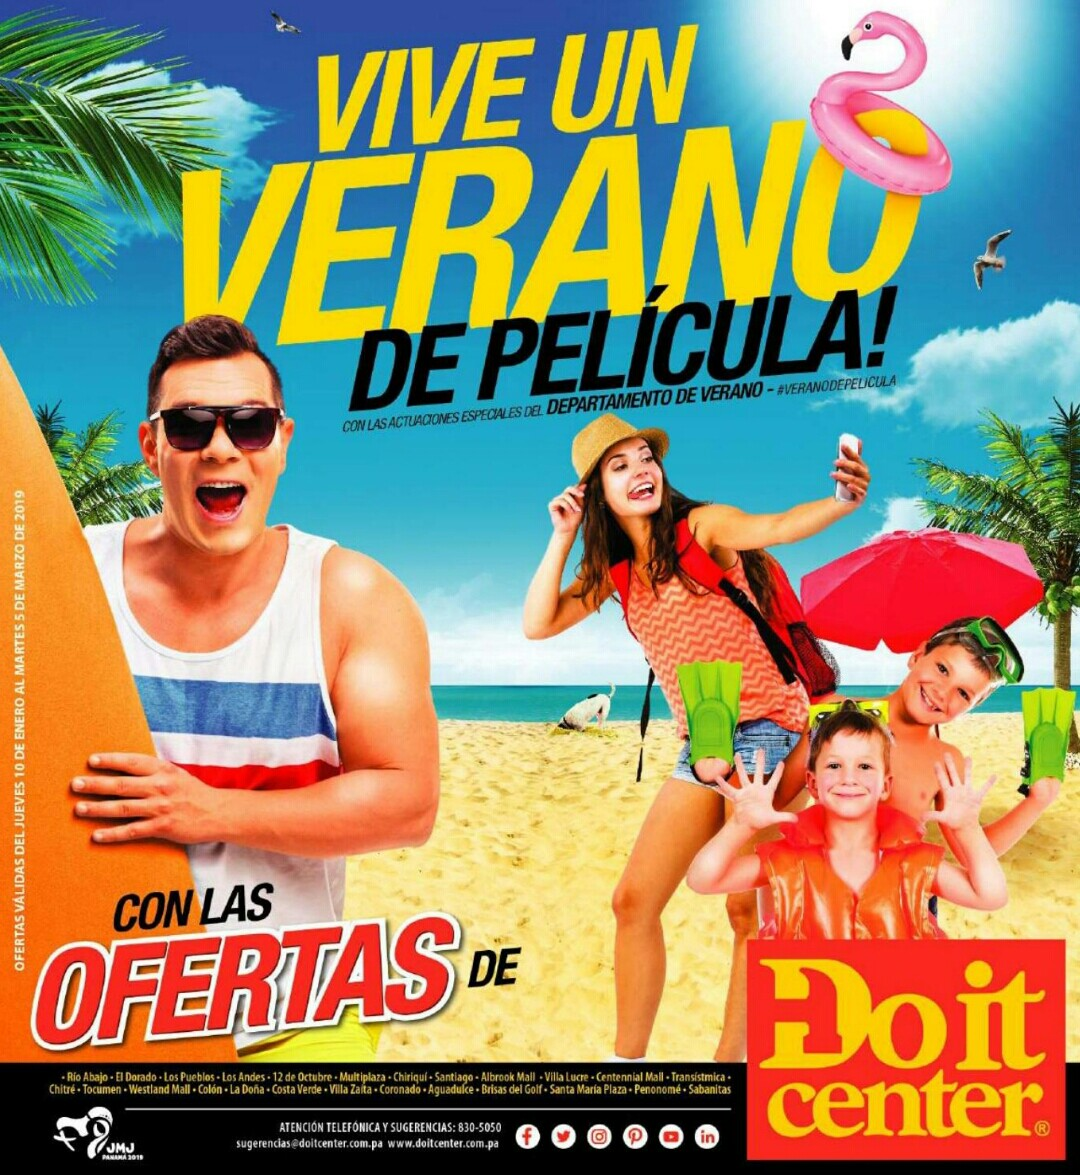 Catalogo Doit Center Verano 2019 página 1